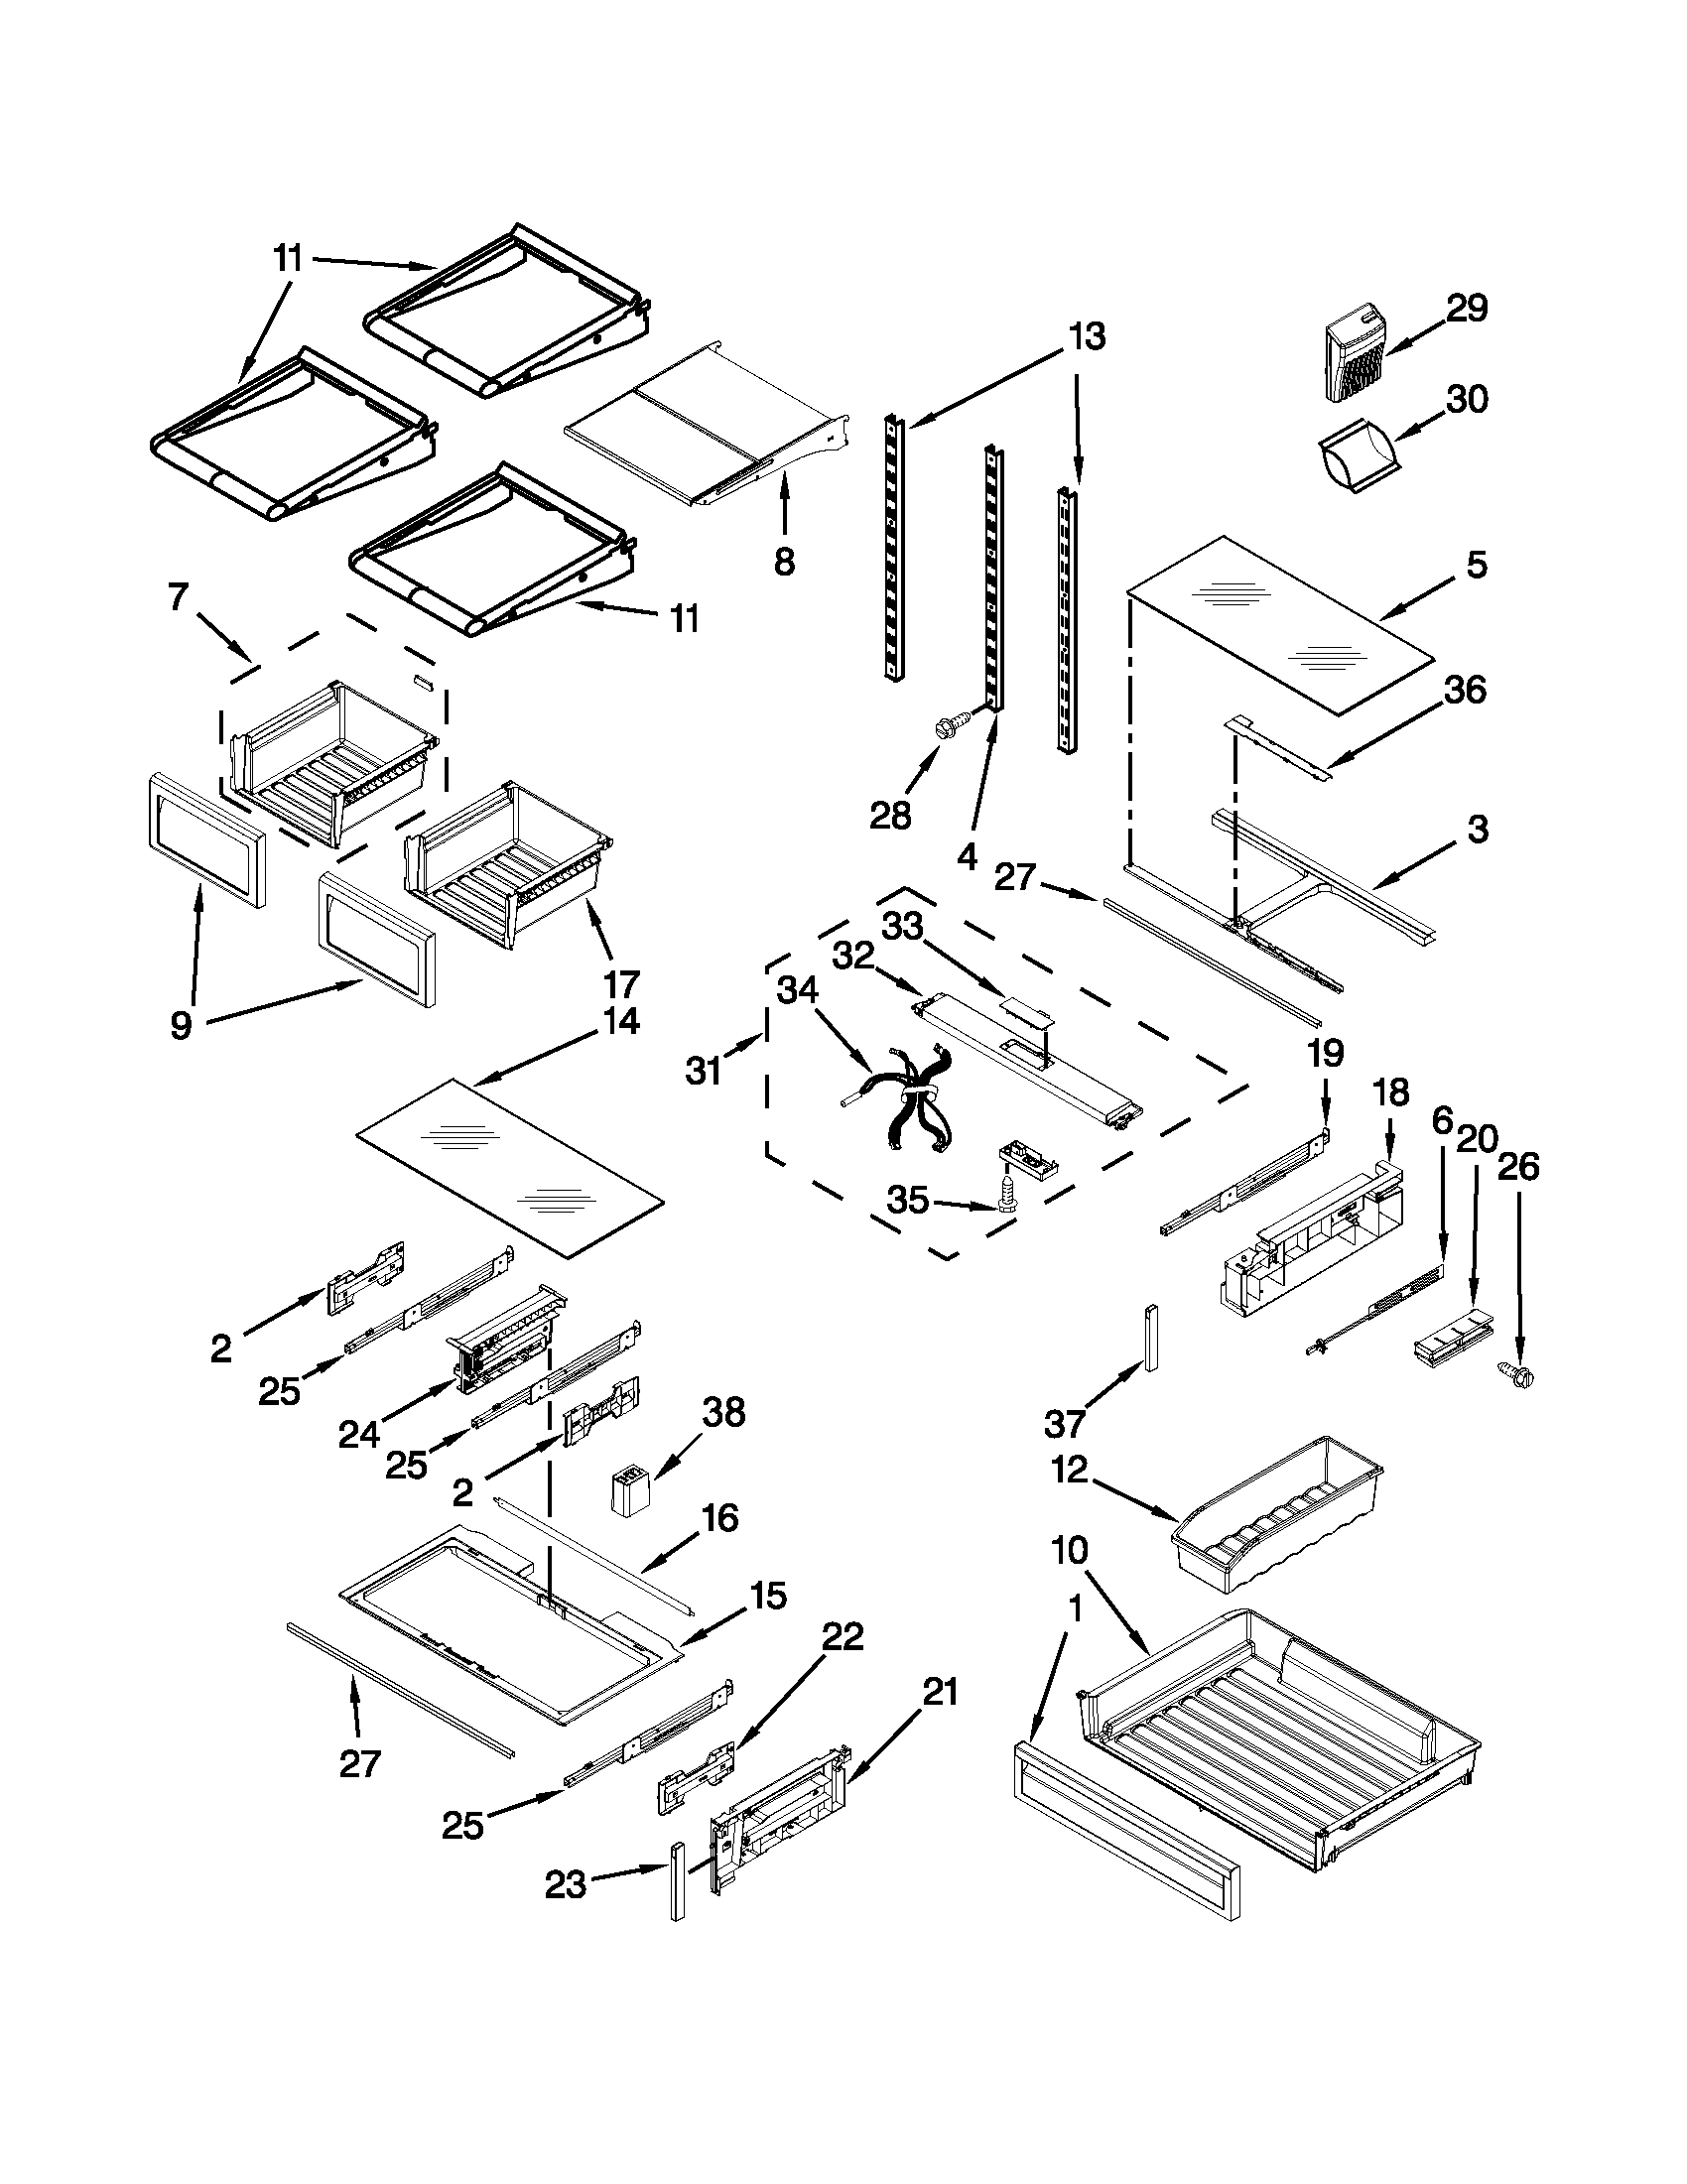 SHELF PARTS Diagram & Parts List for Model kfis29bbms02